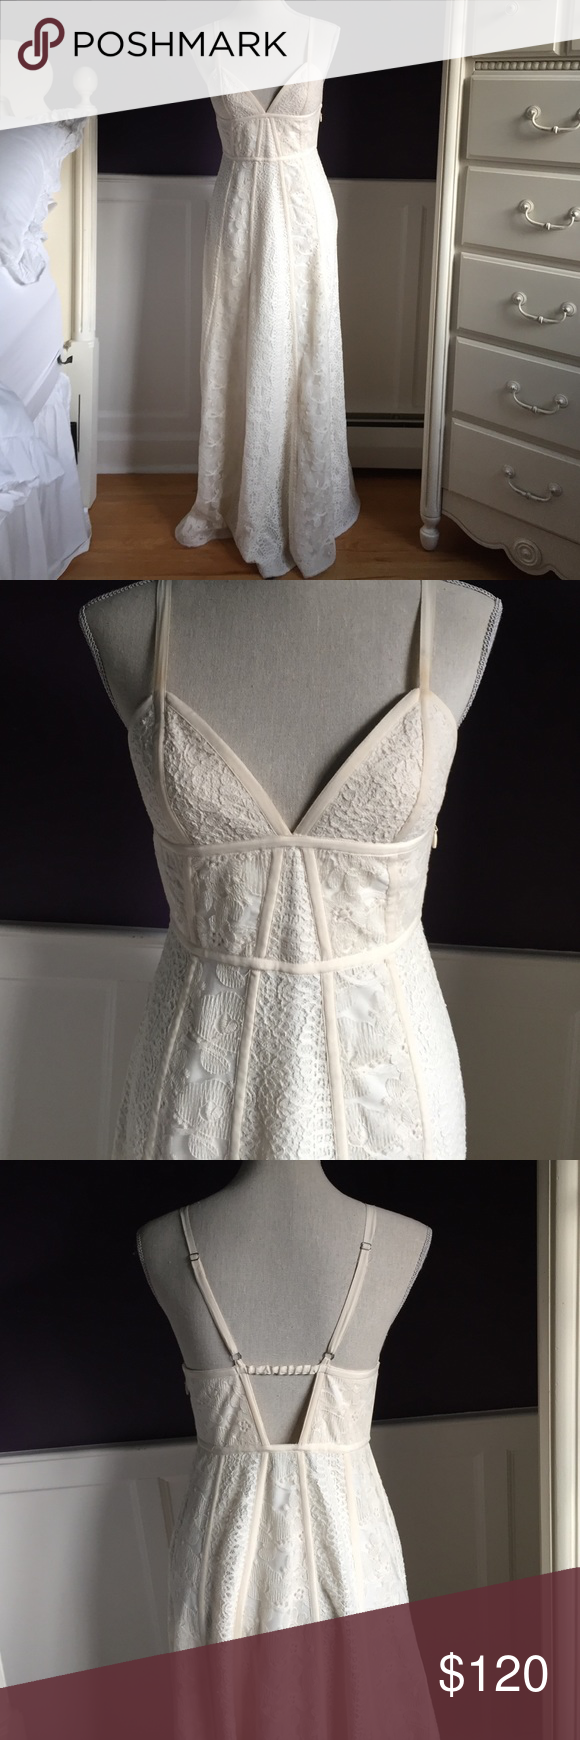 BCBG MAXAZRIA Cream lace gown BCBG MAXAZRIA Cream lace gown with spaghetti straps. Great for a bridal or prom dress. Only worn once. Slight makeup on straps that will come out at dry cleaner. Size: 6. Feel free to message me with any questions or make me an offer! BCBGMaxAzria Dresses